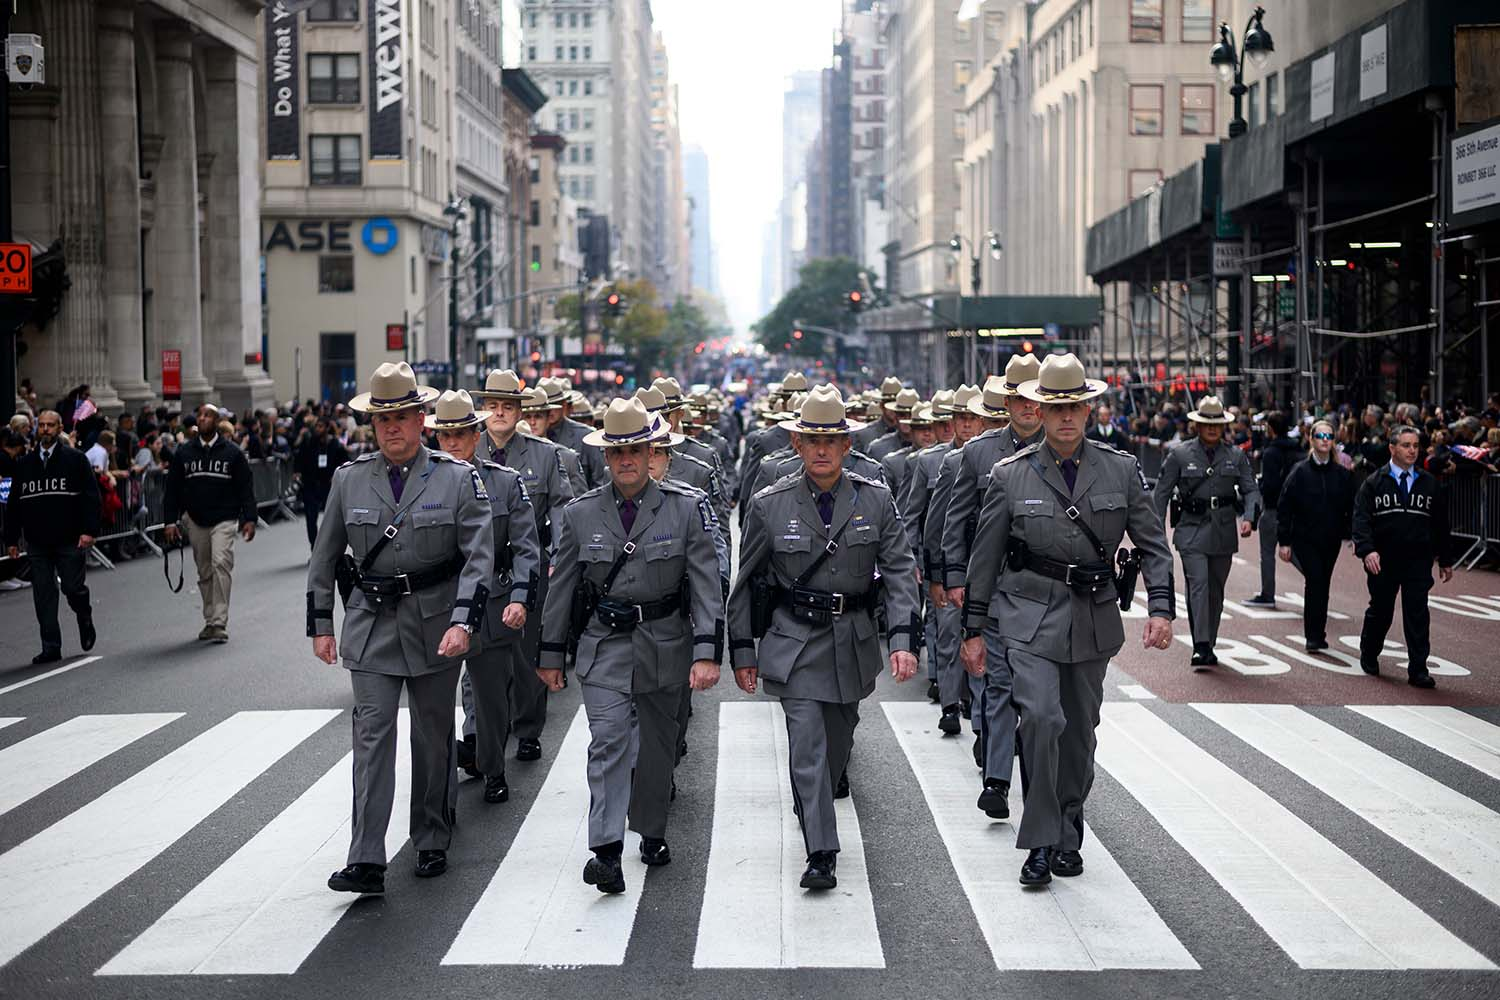 People attend the Veterans Day Parade on Fifth Avenue in New York City on Nov. 11. JOHANNES EISELE/AFP via Getty Images